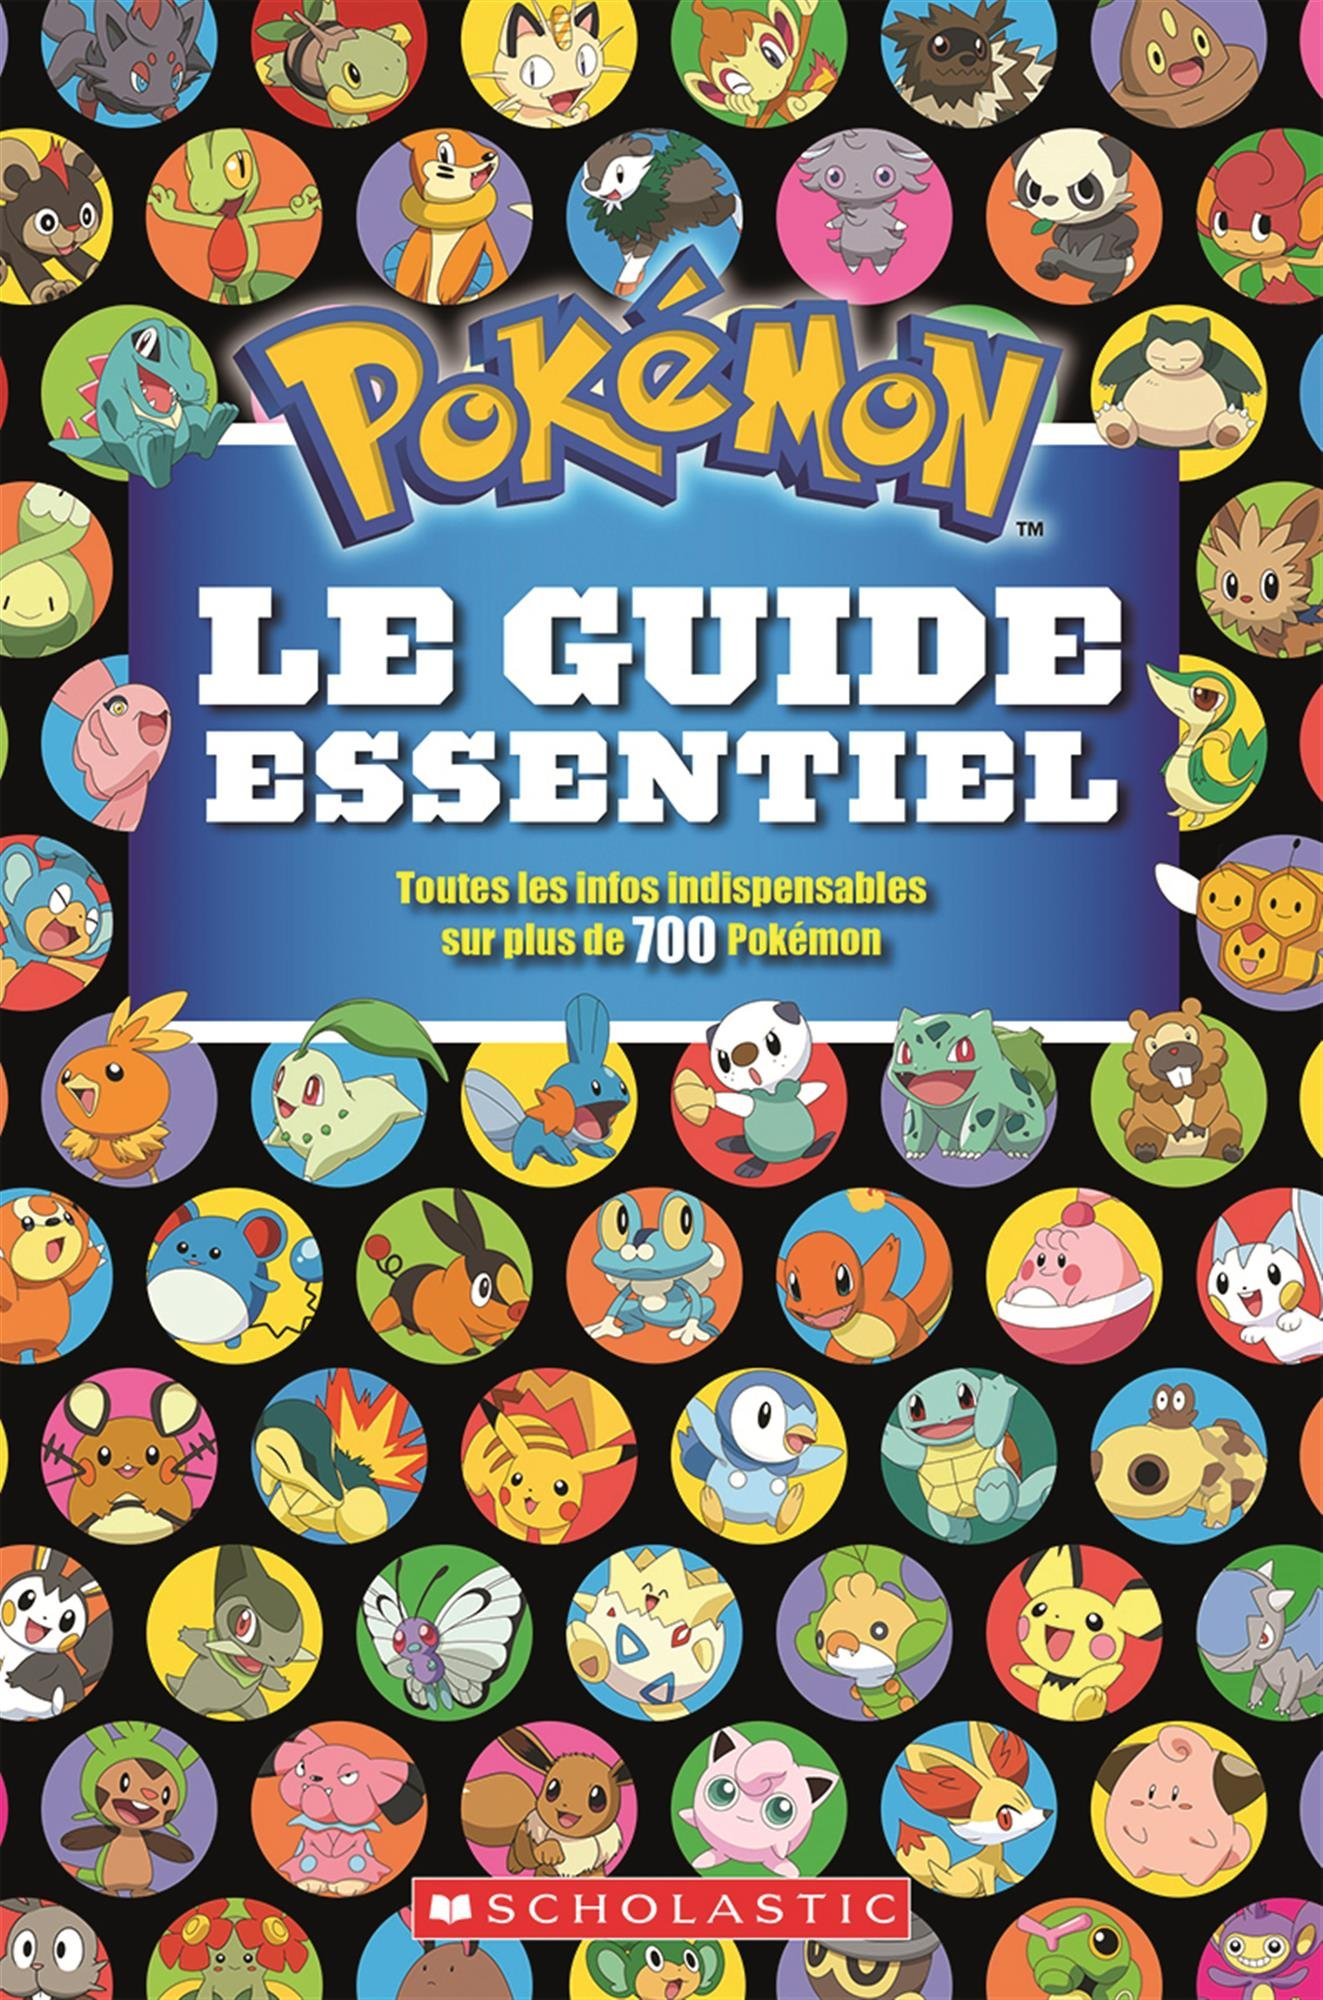 Pokemon Le Guide Essentiel Scholastic Canada Ltd